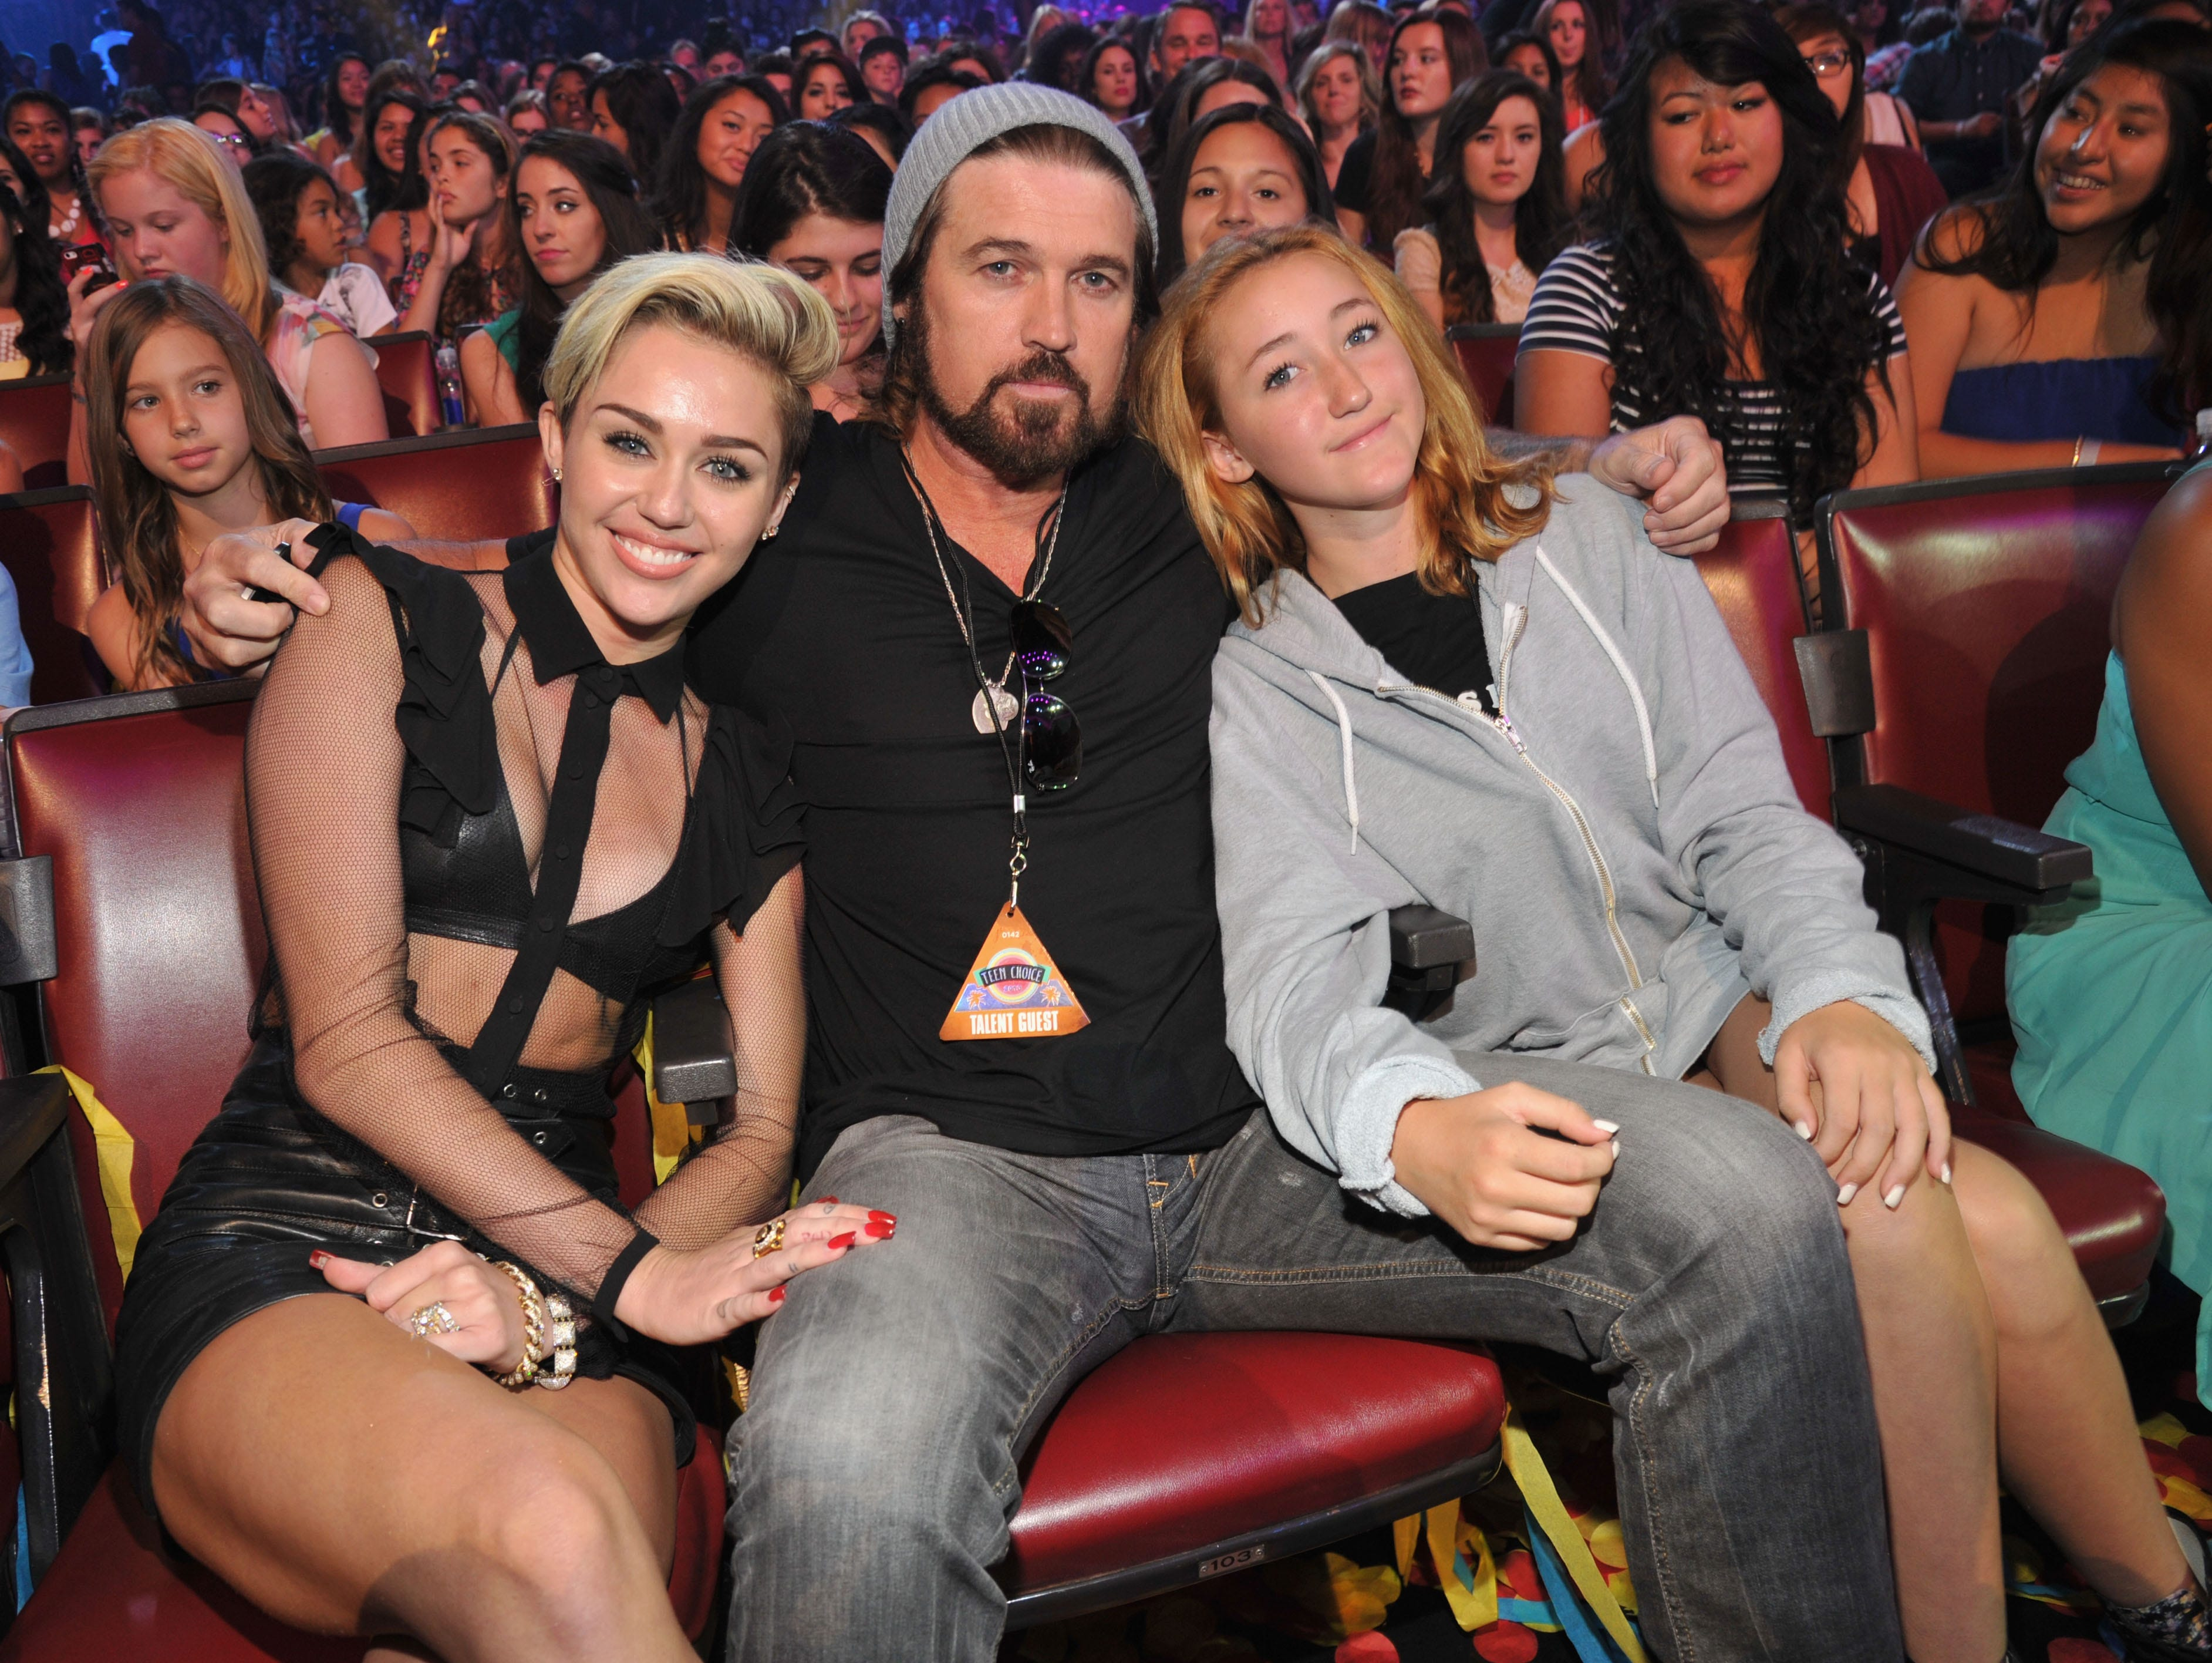 Actress/musician Miley Cyrus, musician Billy Ray Cyrus, and actress Noah Cyrus attend the 2013 Teen Choice Awards at Gibson Amphitheatre on August 11, 2013 in Universal City, California.